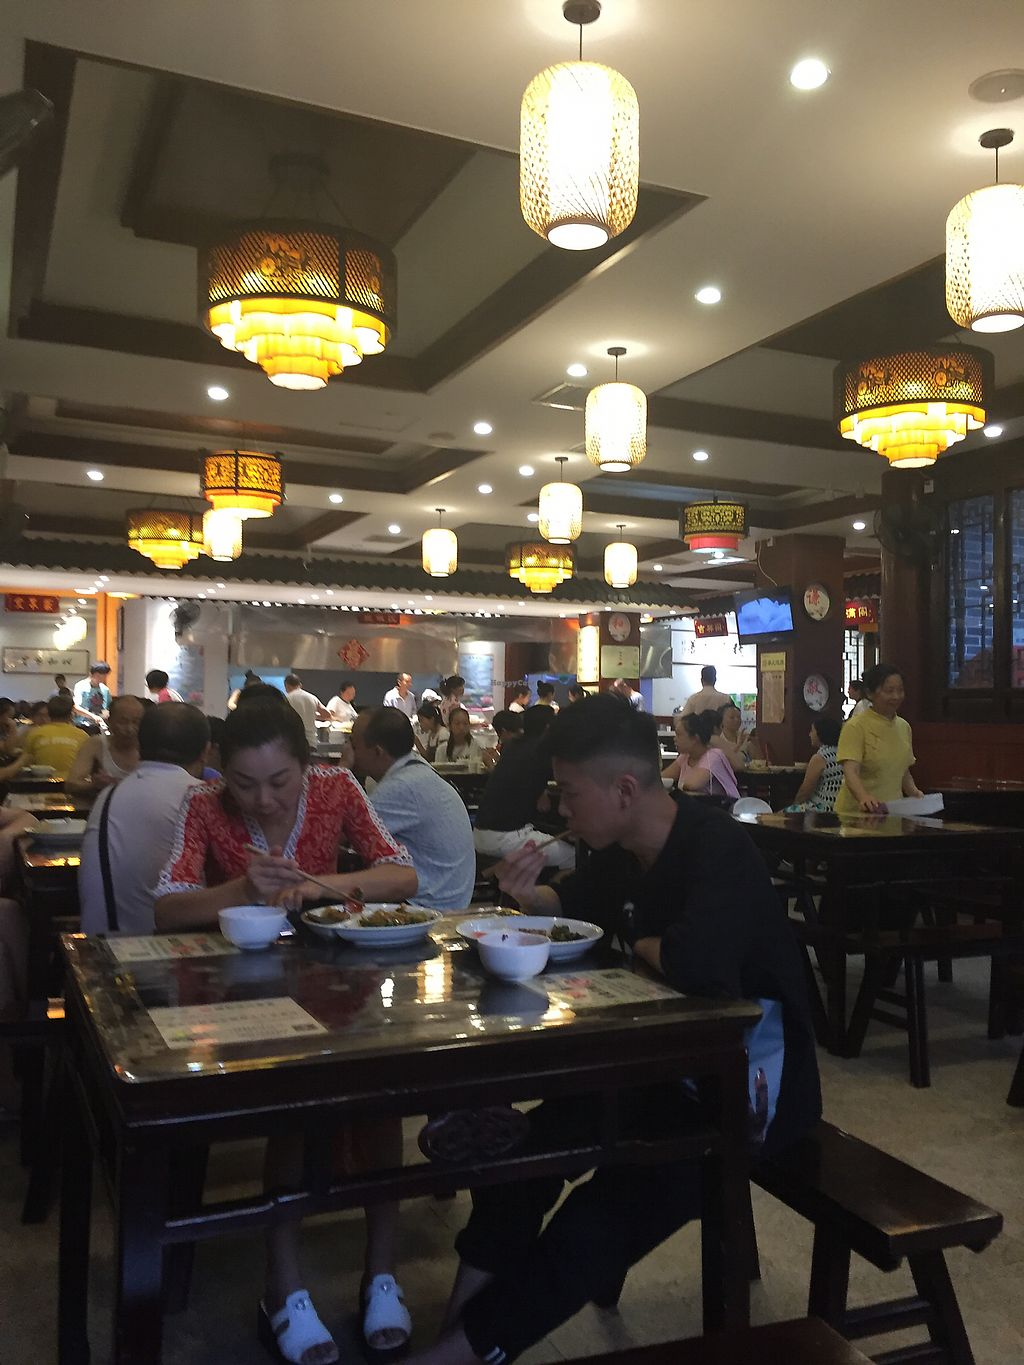 """Photo of Ju Shan Yuan Qing Xin  by <a href=""""/members/profile/H2OAddict"""">H2OAddict</a> <br/>Main dining area <br/> August 5, 2017  - <a href='/contact/abuse/image/91461/288874'>Report</a>"""